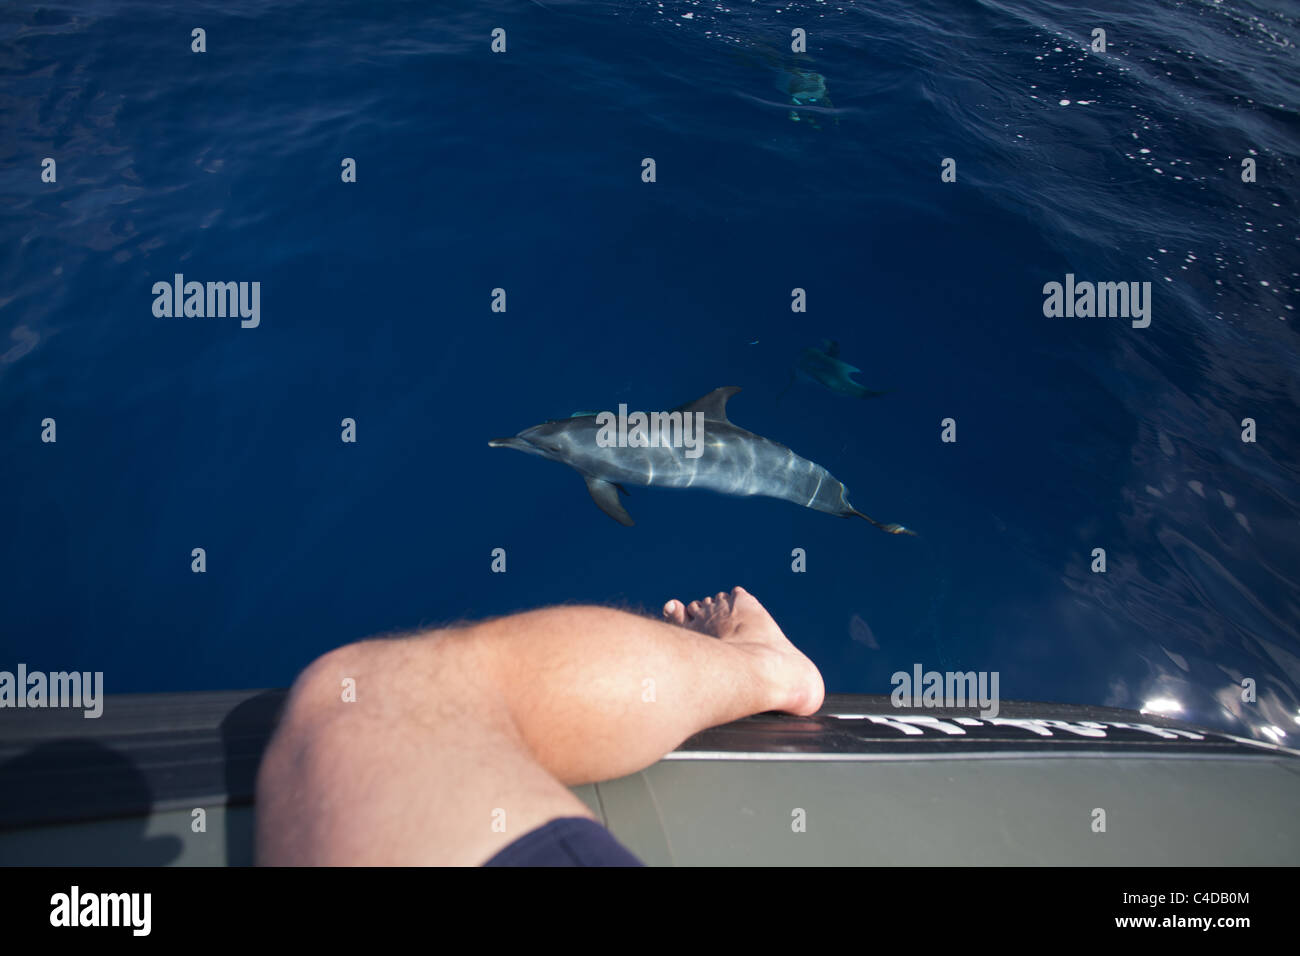 An atlantic spotted dolphin (Stenella frontalis) watches a man with his leg dangling over a boat, off Pico island, - Stock Image